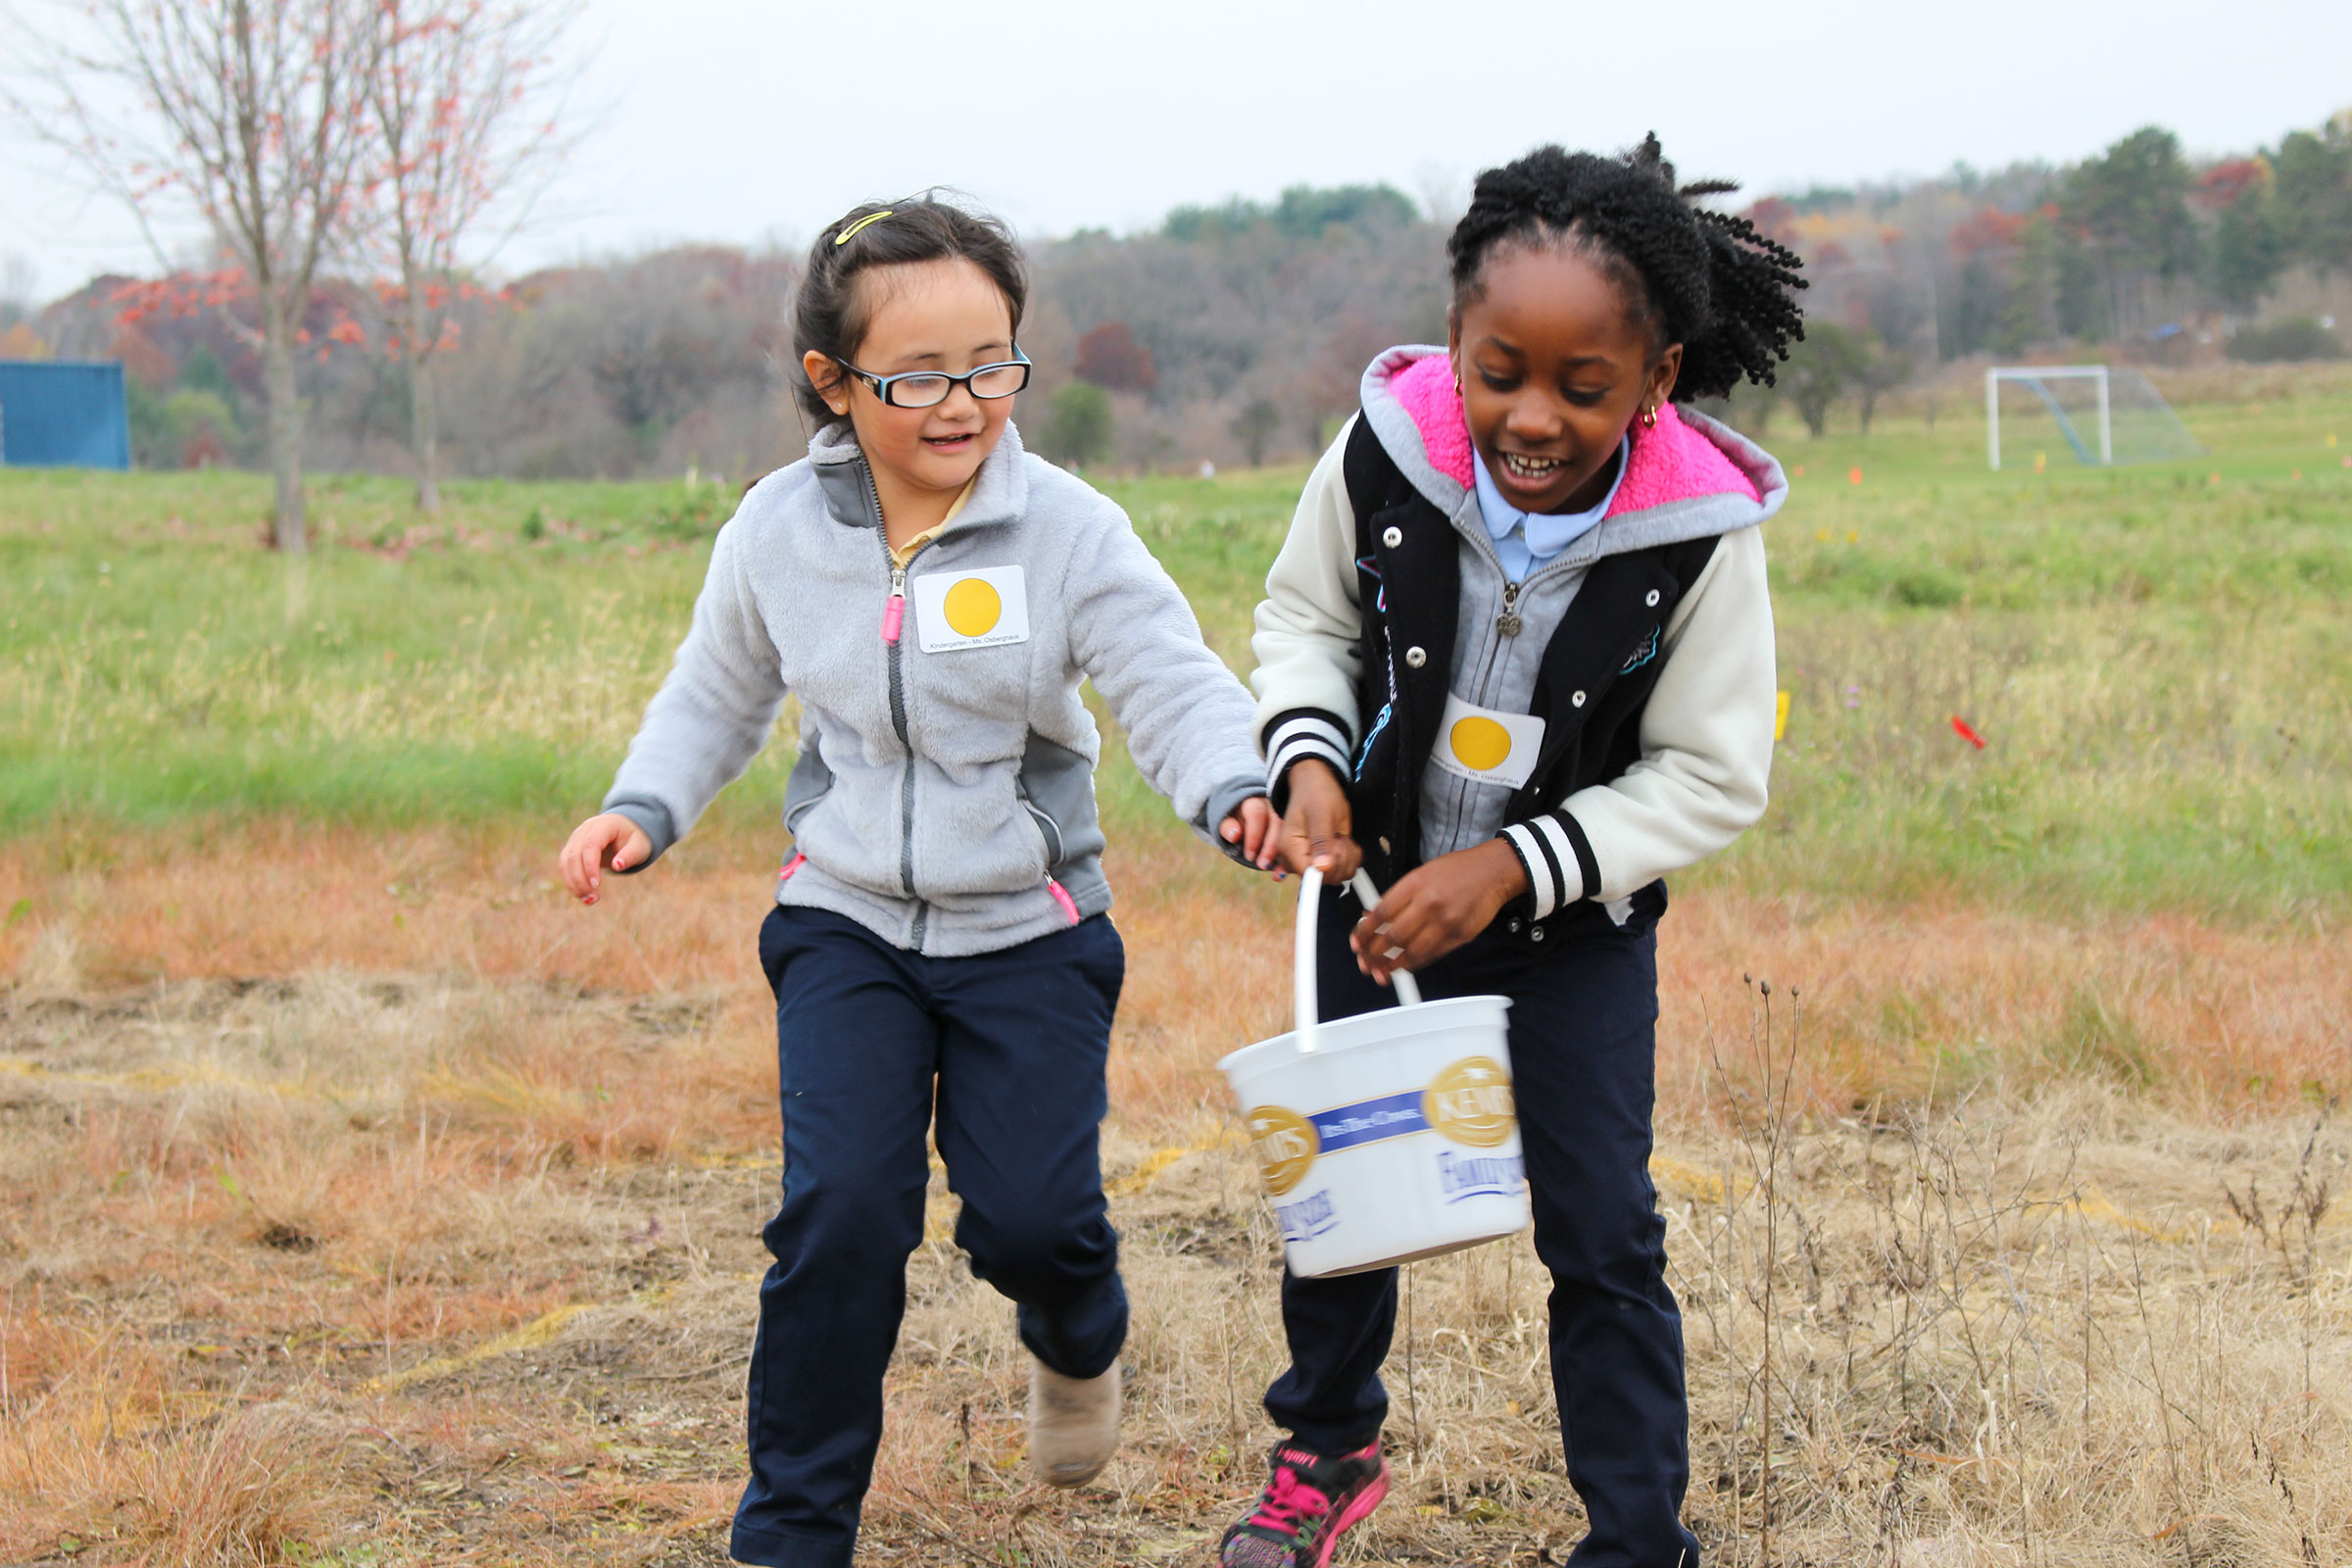 St. Croix Preparatory School will have a prairie ecosystems curriculum that includes monitoring native plants, bluebirds, butterflies, and other insects. Ashley J. Peters